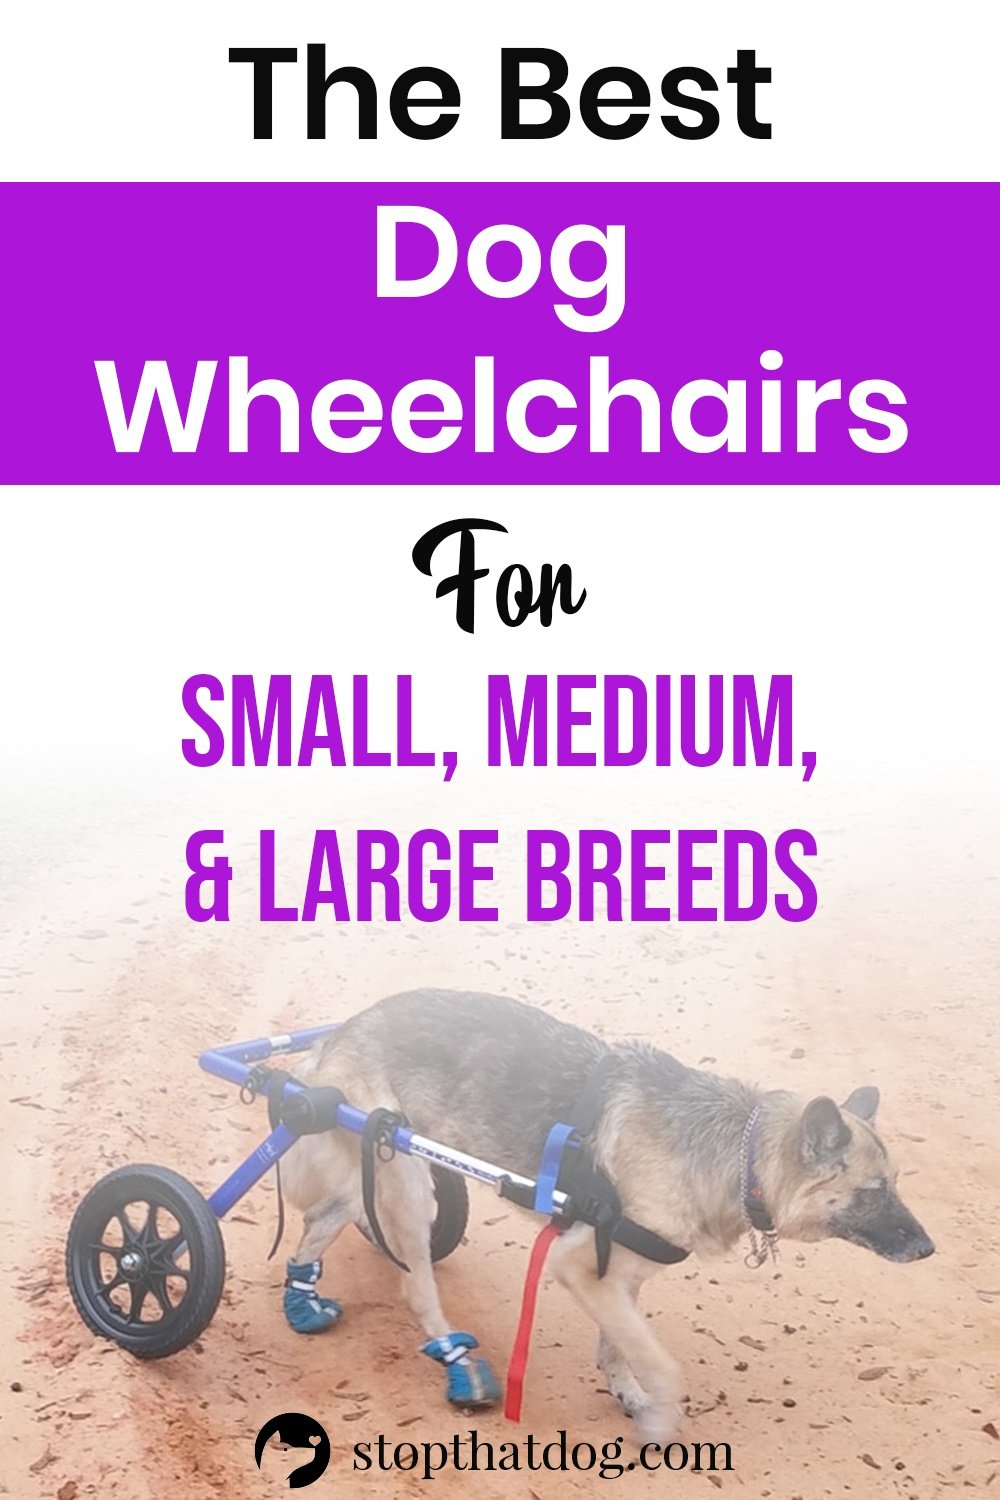 If your dog has a mobility issue or disability, a wheelchair may improve their quality of life. This guide reveals the best dog wheelchairs for small, medium, and large breeds.